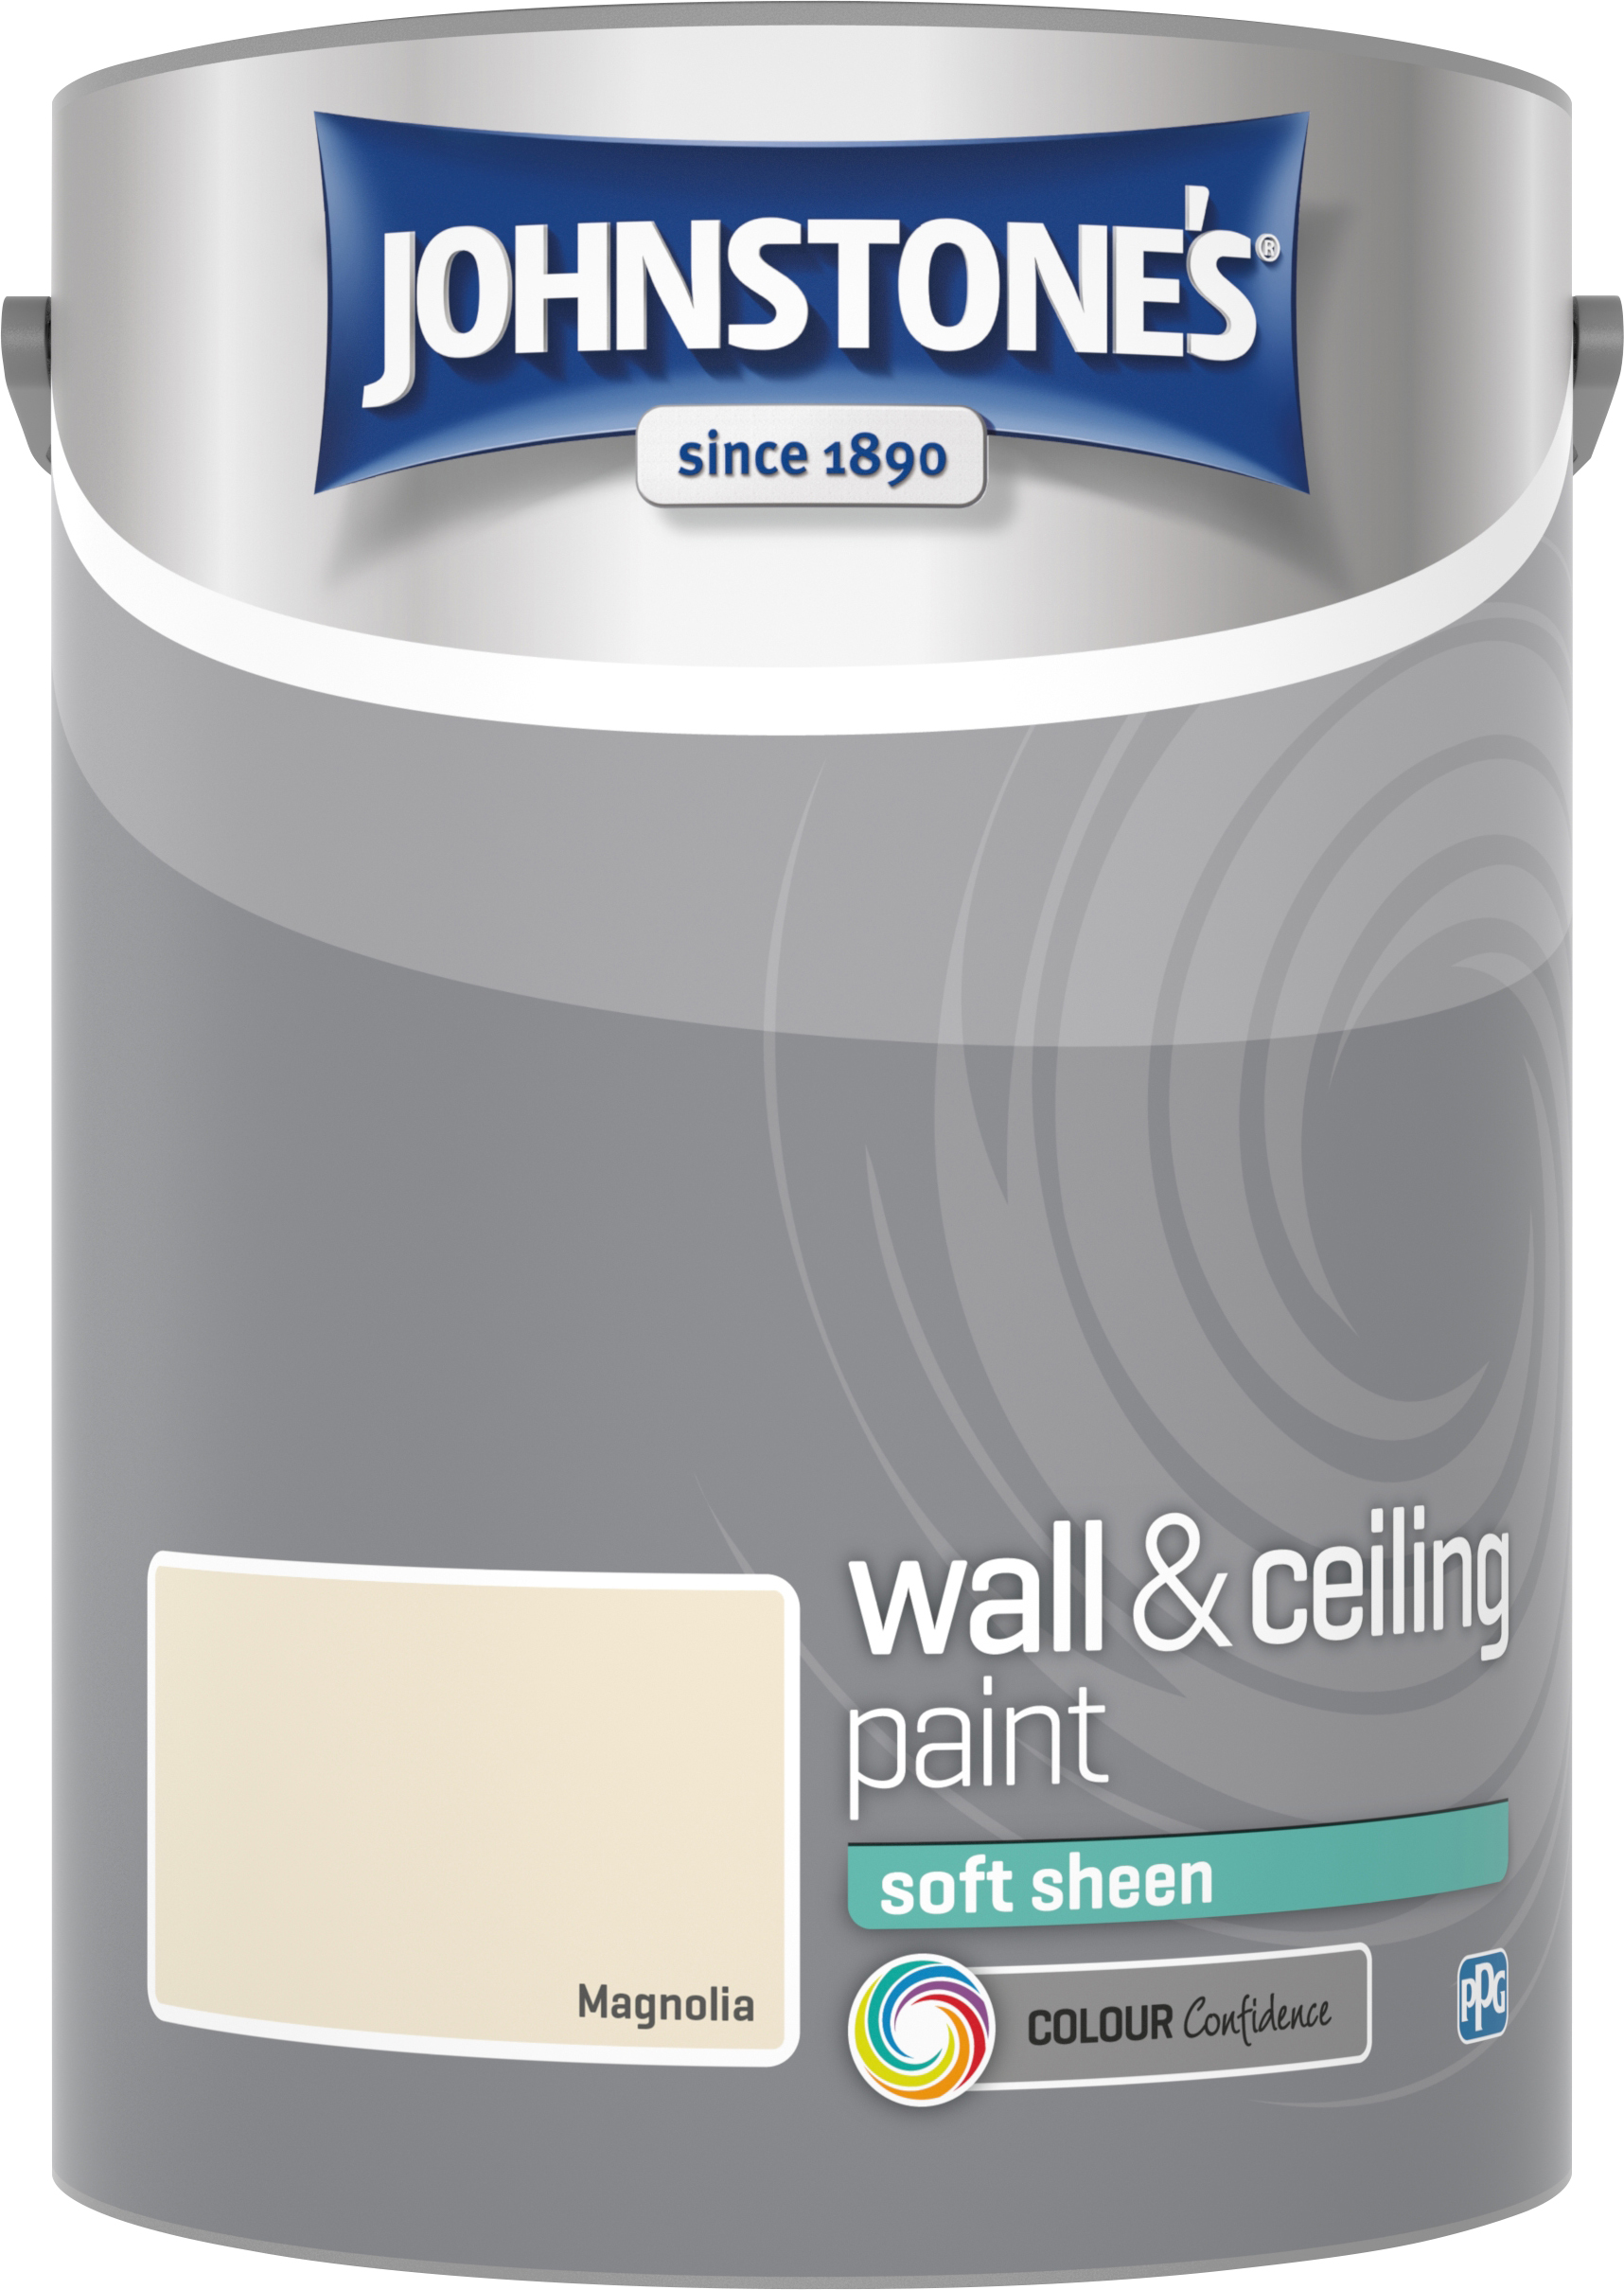 Johnstone's 304190 5 Litre Soft Sheen Emulsion Paint - Magnolia